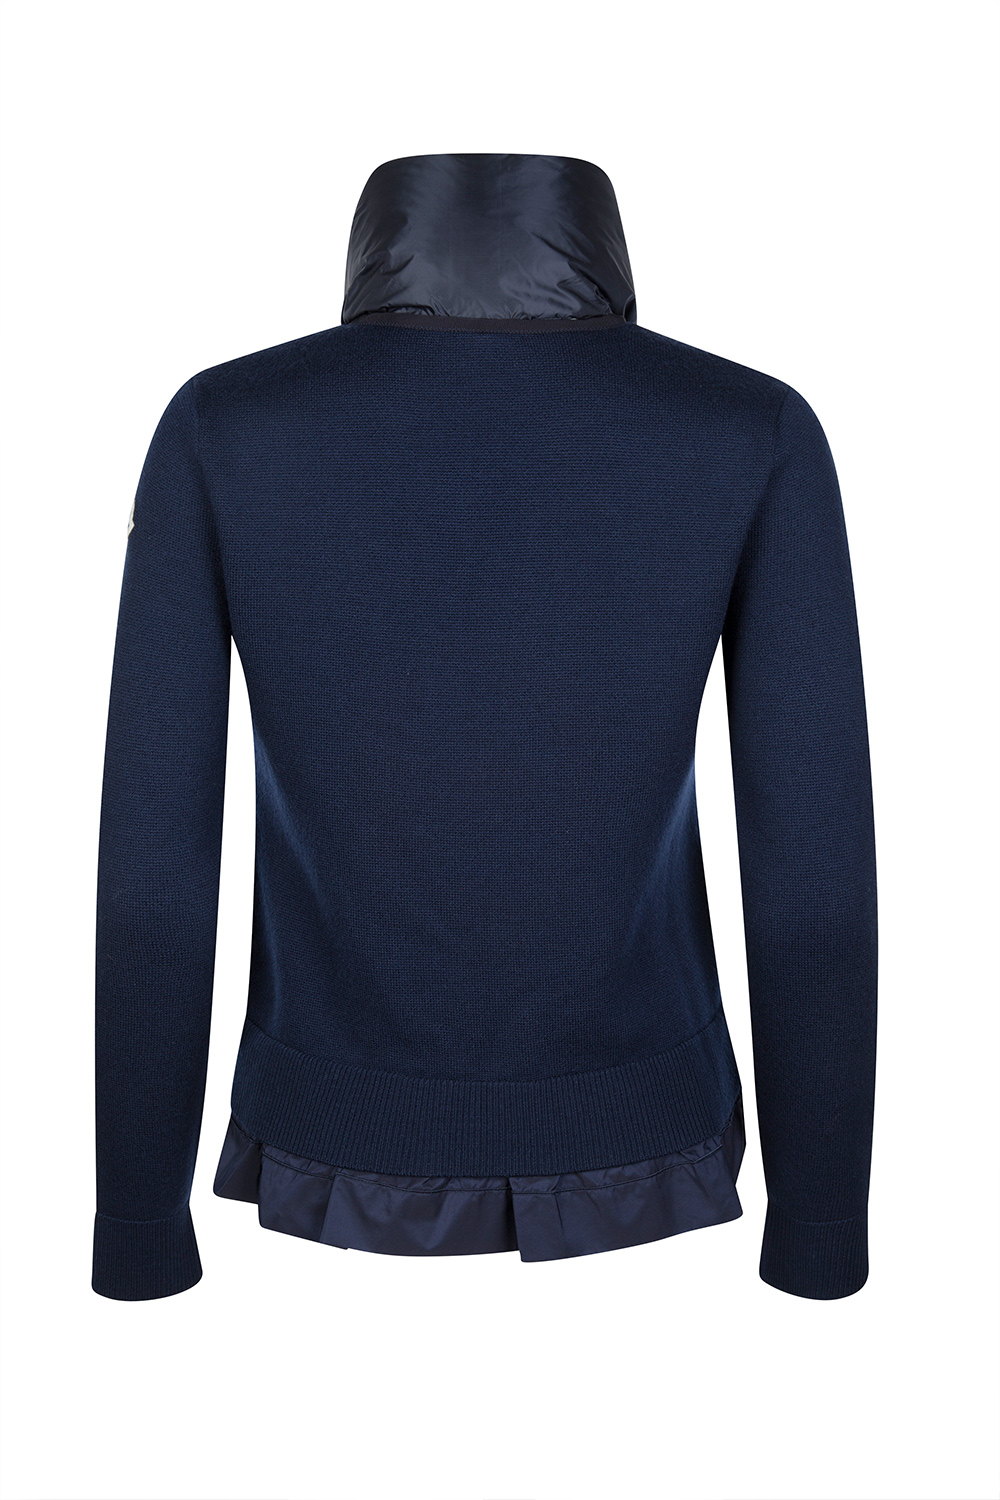 69071beca Moncler Women's Scarf Cardigan Navy Blue | Linea Fashion Linea Fashion